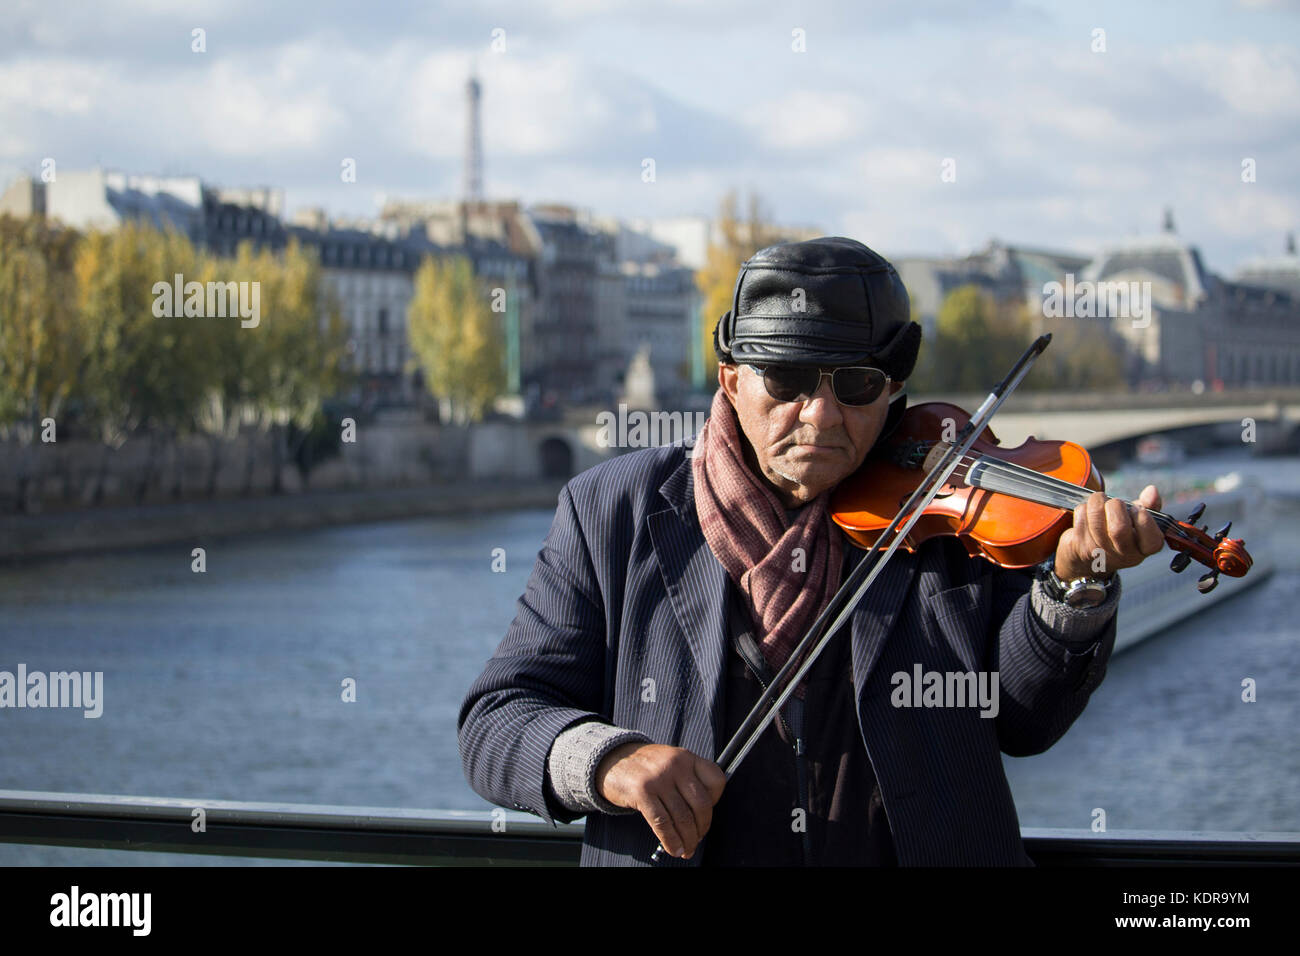 Violin Player in Paris with the Eiffel Tour and buildings in the background - Stock Image